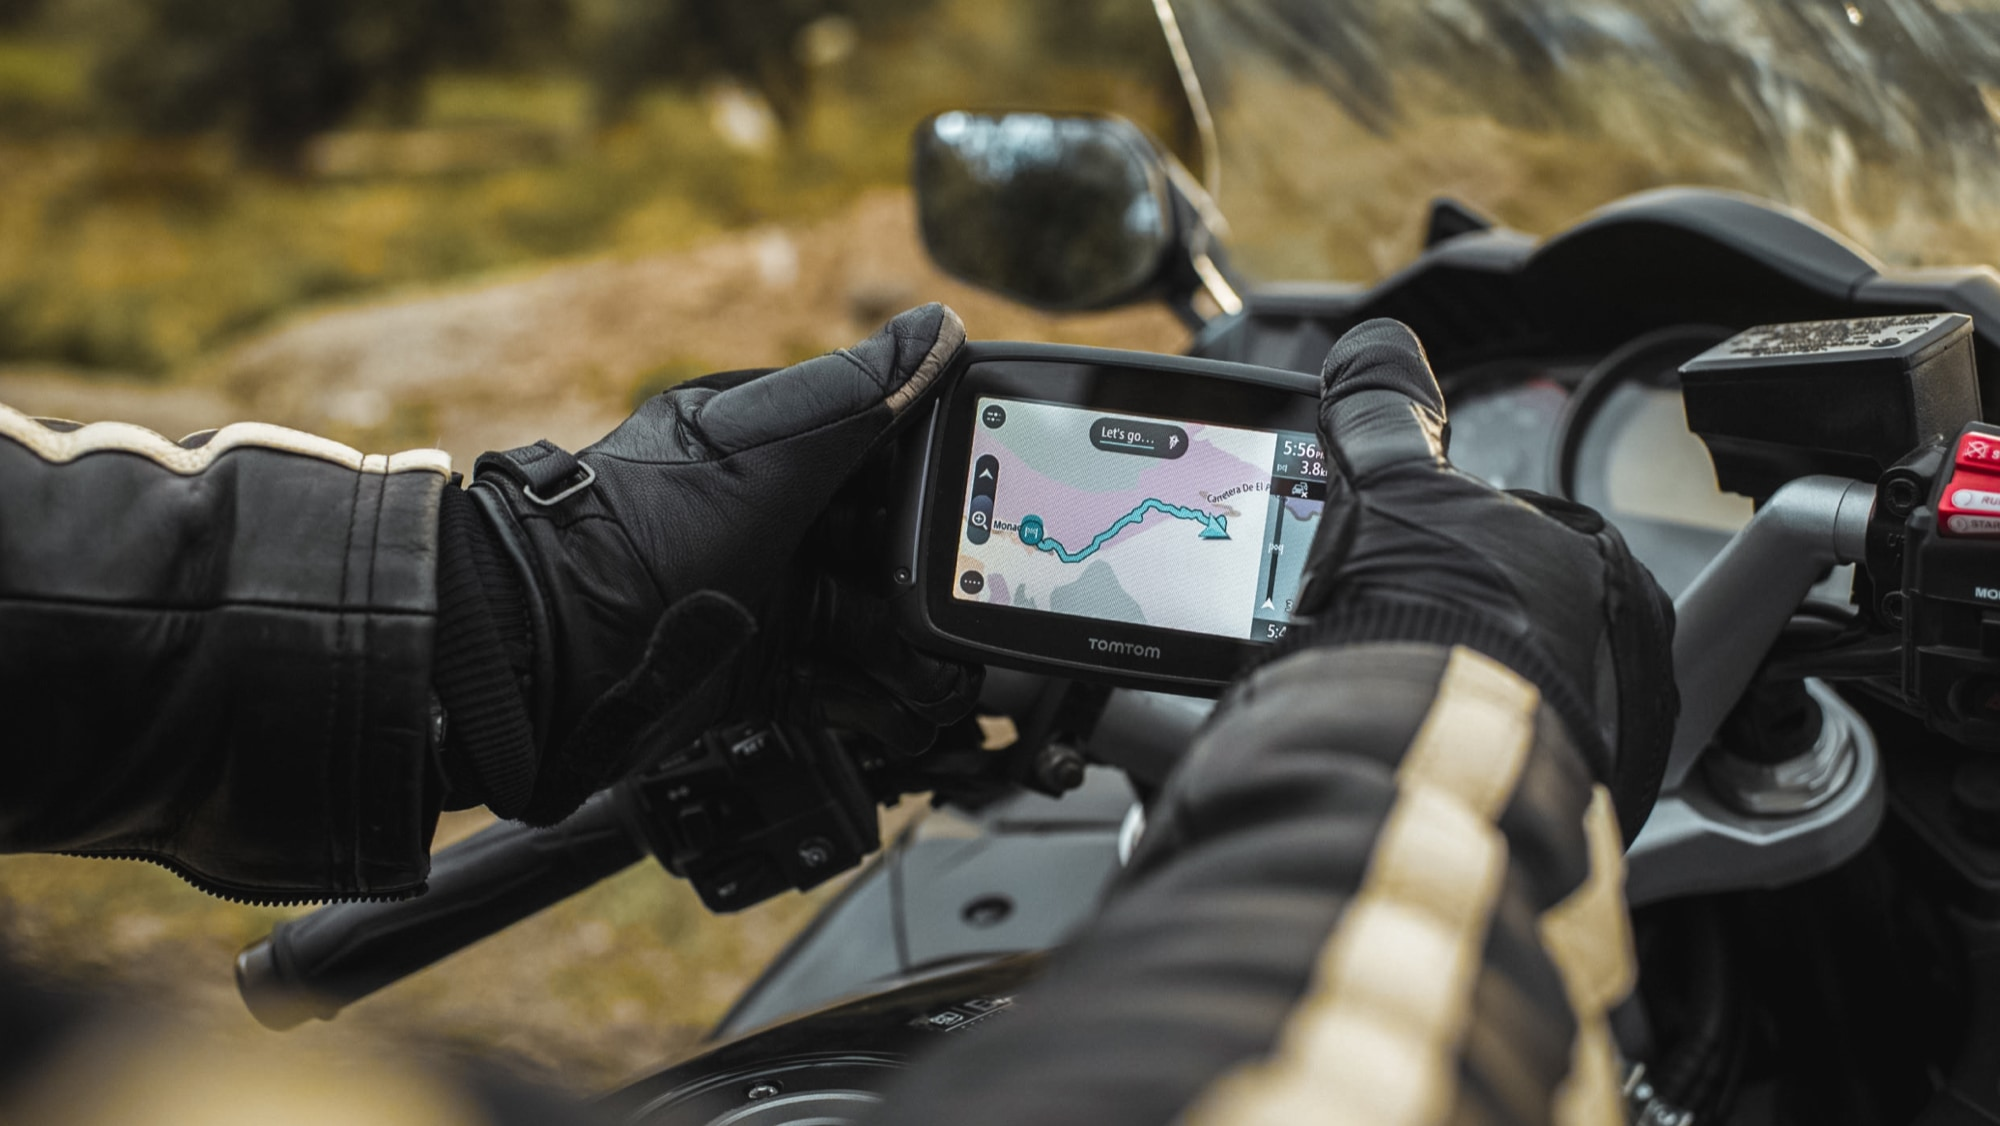 TomTom GO series updating maps and software via Wi-Fi, no computer needed